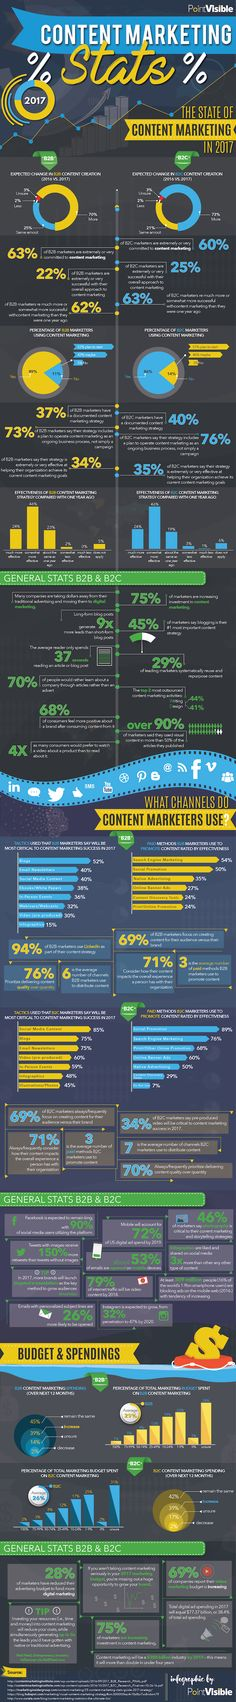 How Much Do Companies Spend on Content Marketing? [Infographic]